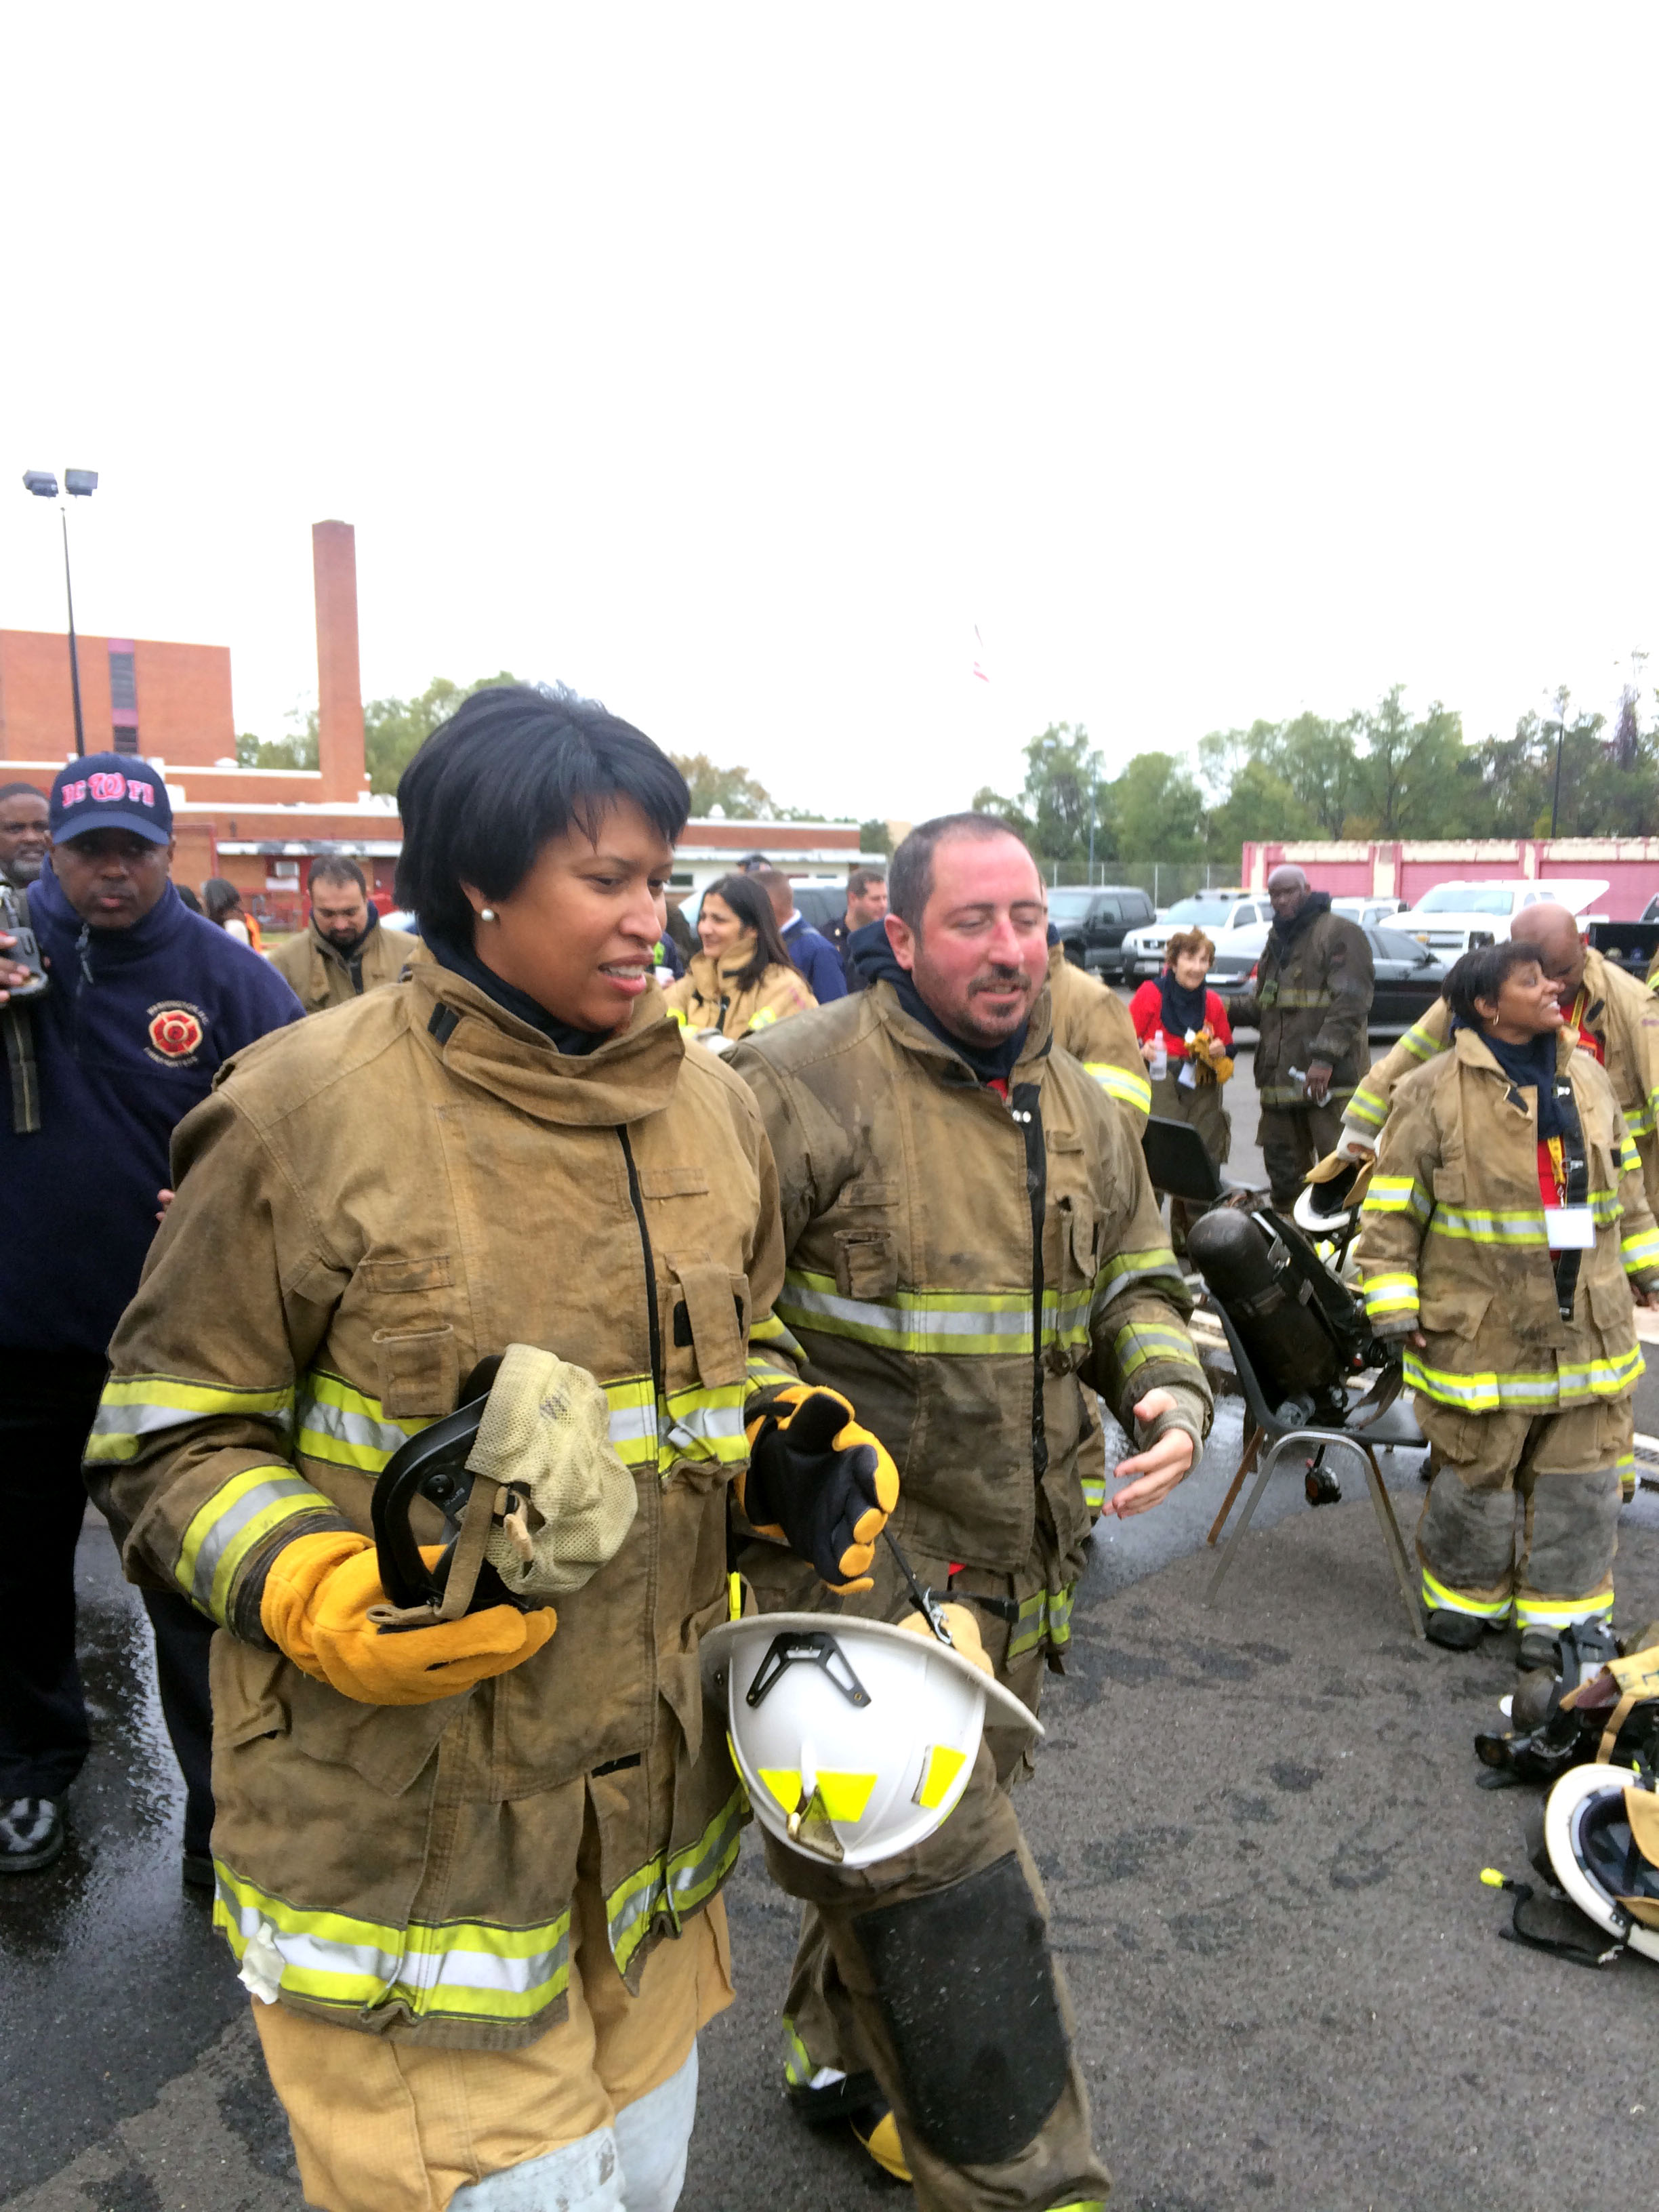 D.C. settles long-running dispute over firefighters' overtime pay